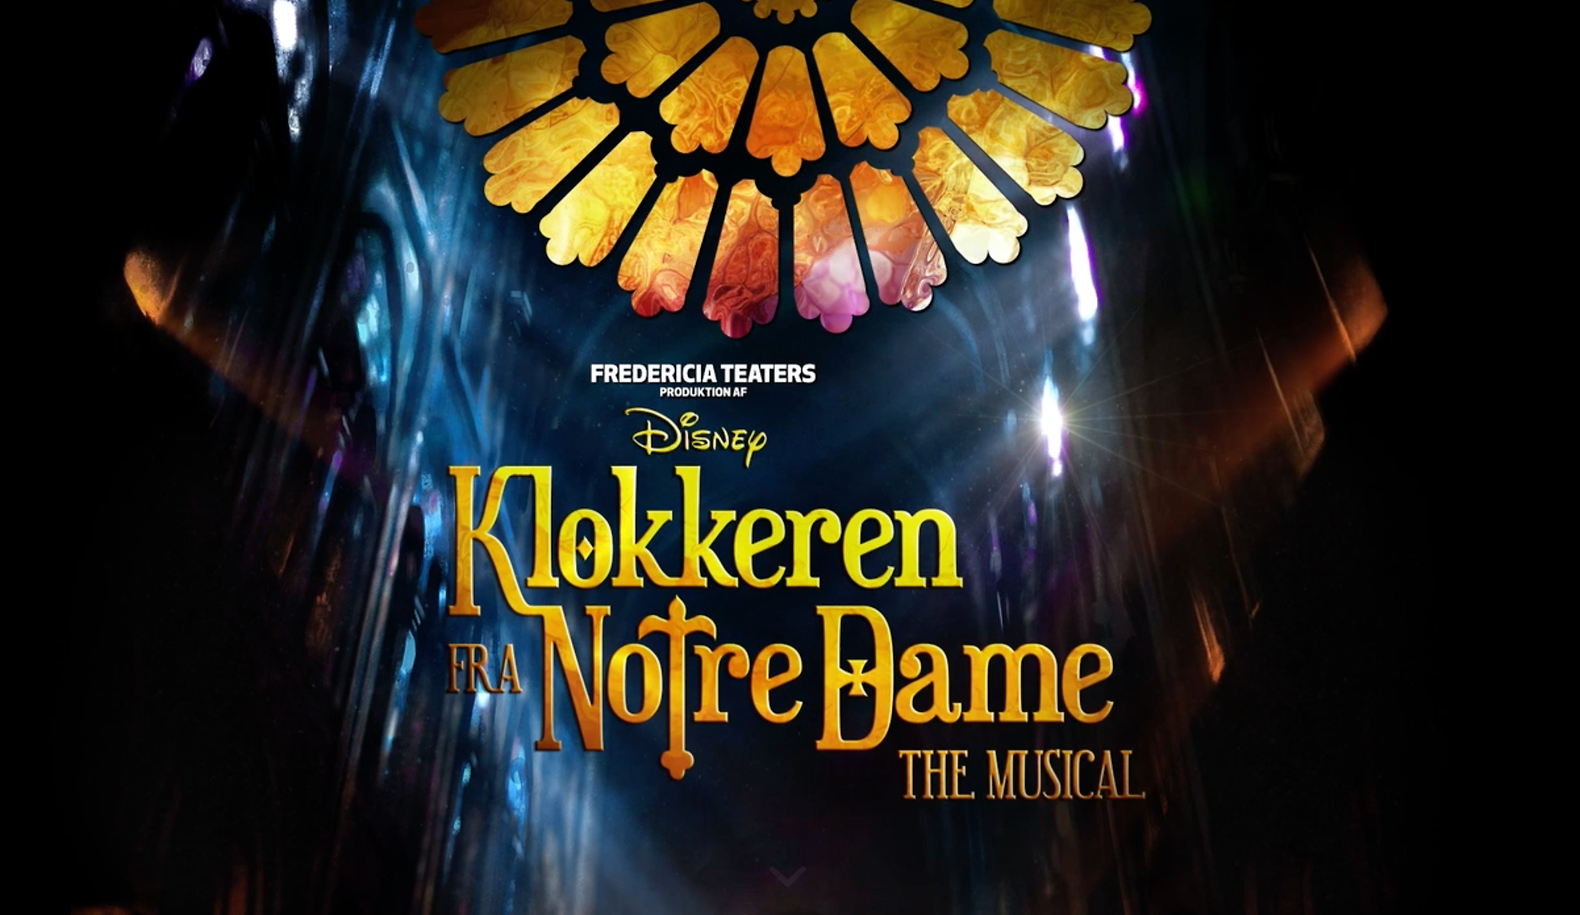 Disney Friday: The Hunchback of Notre Dame Musical